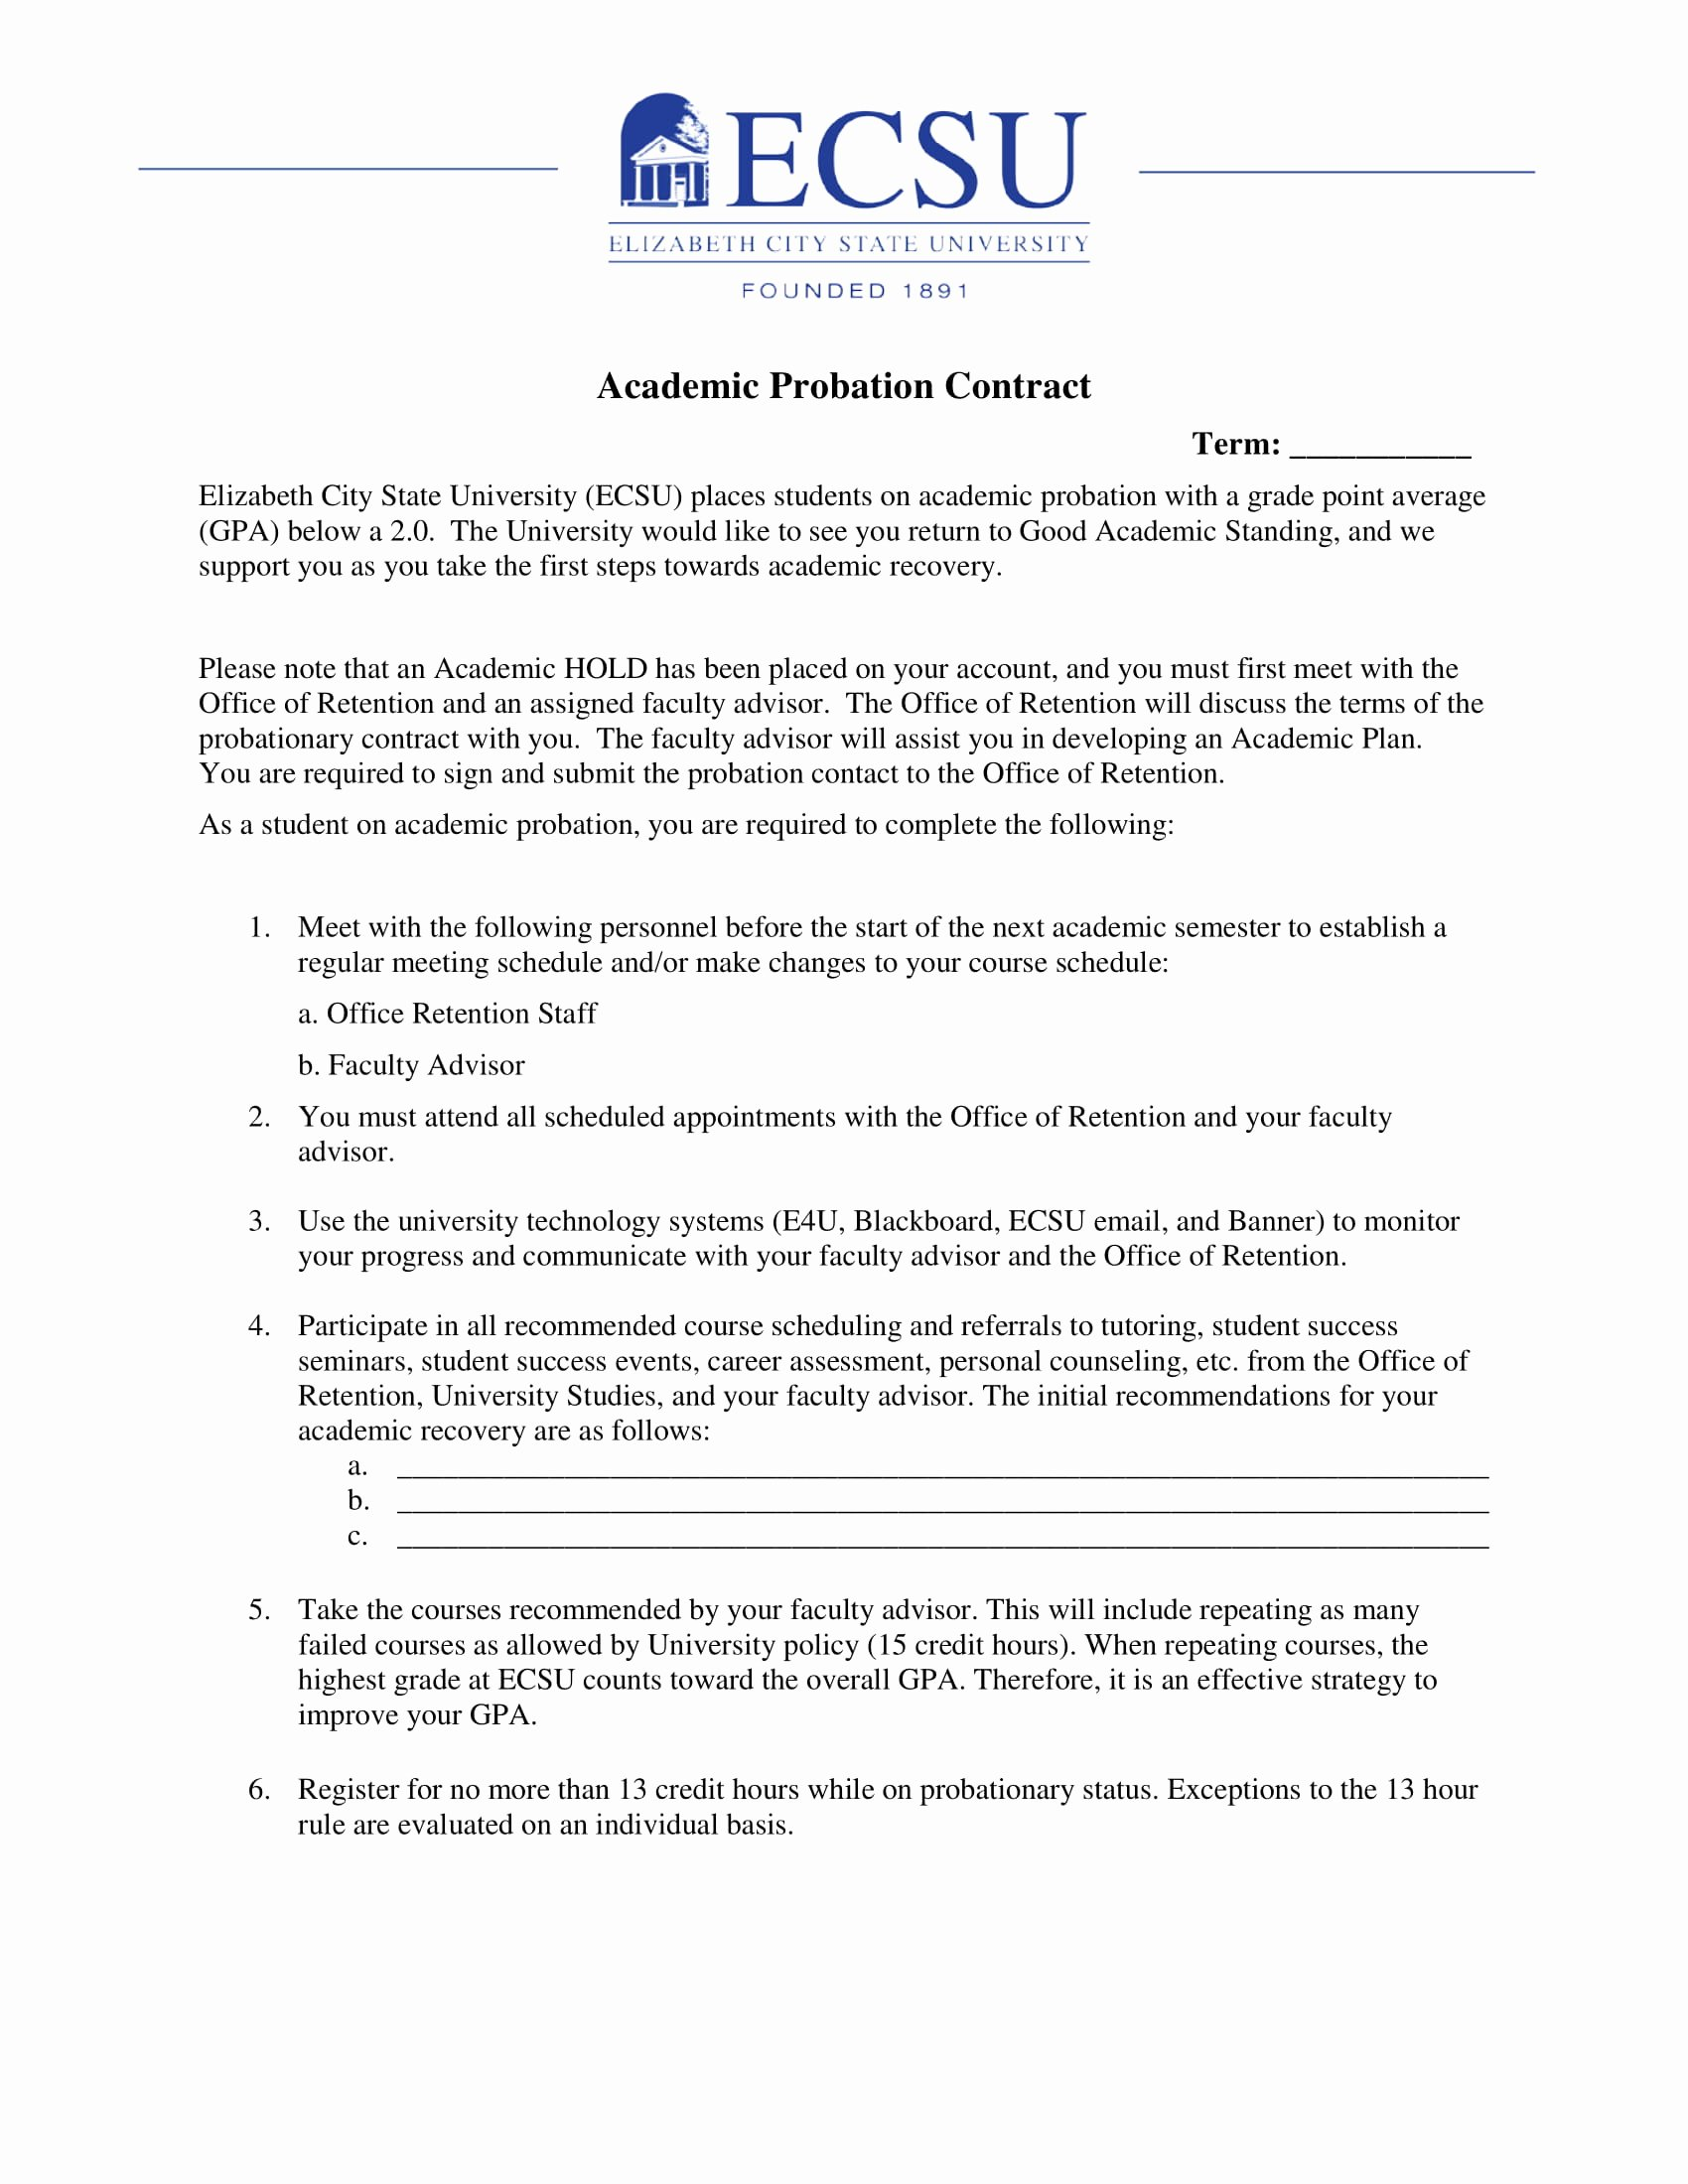 Student Academic Contract Template Lovely 11 Student Academic Contract Template Examples Pdf Word Google Docs Apple Pages